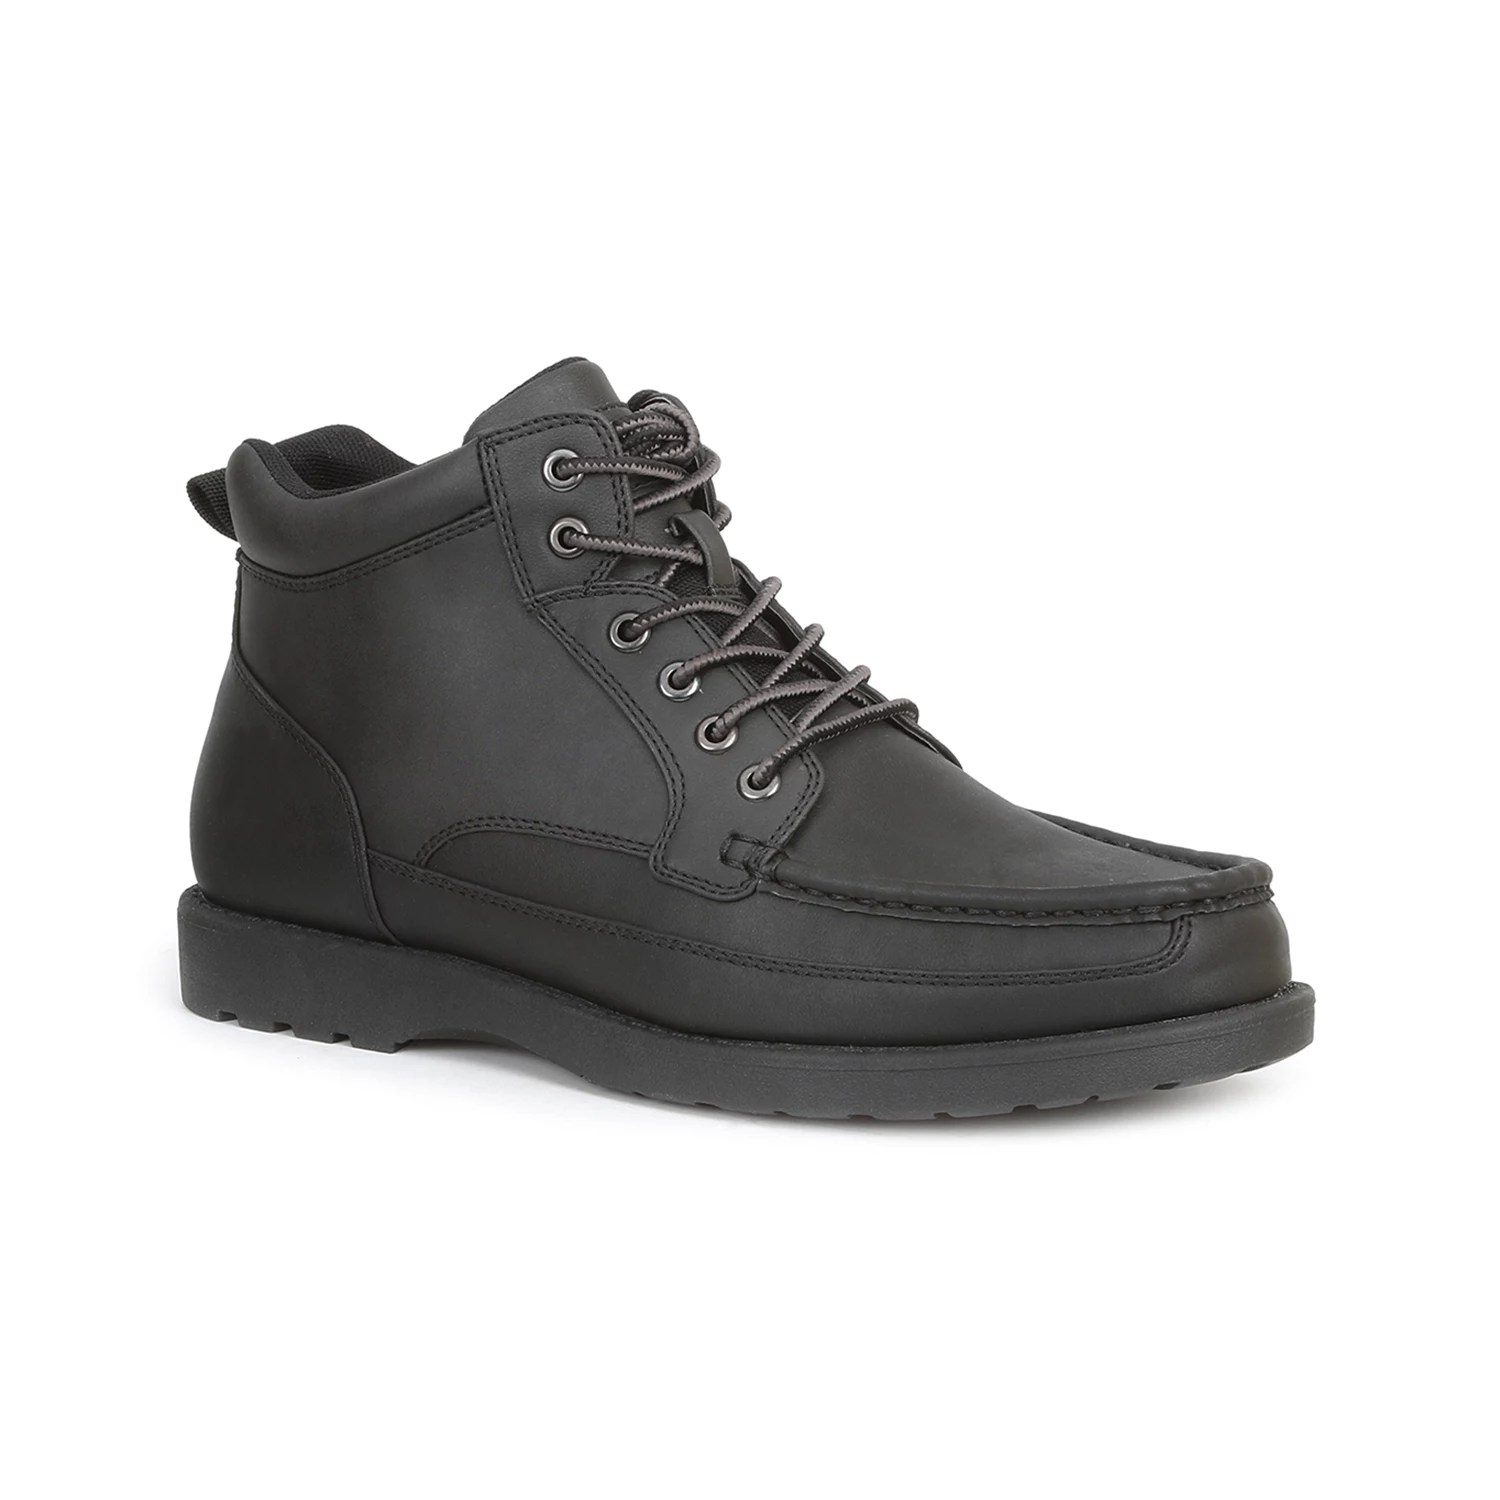 Shoes izod jaret men   ankle boots also kohl rh kohls